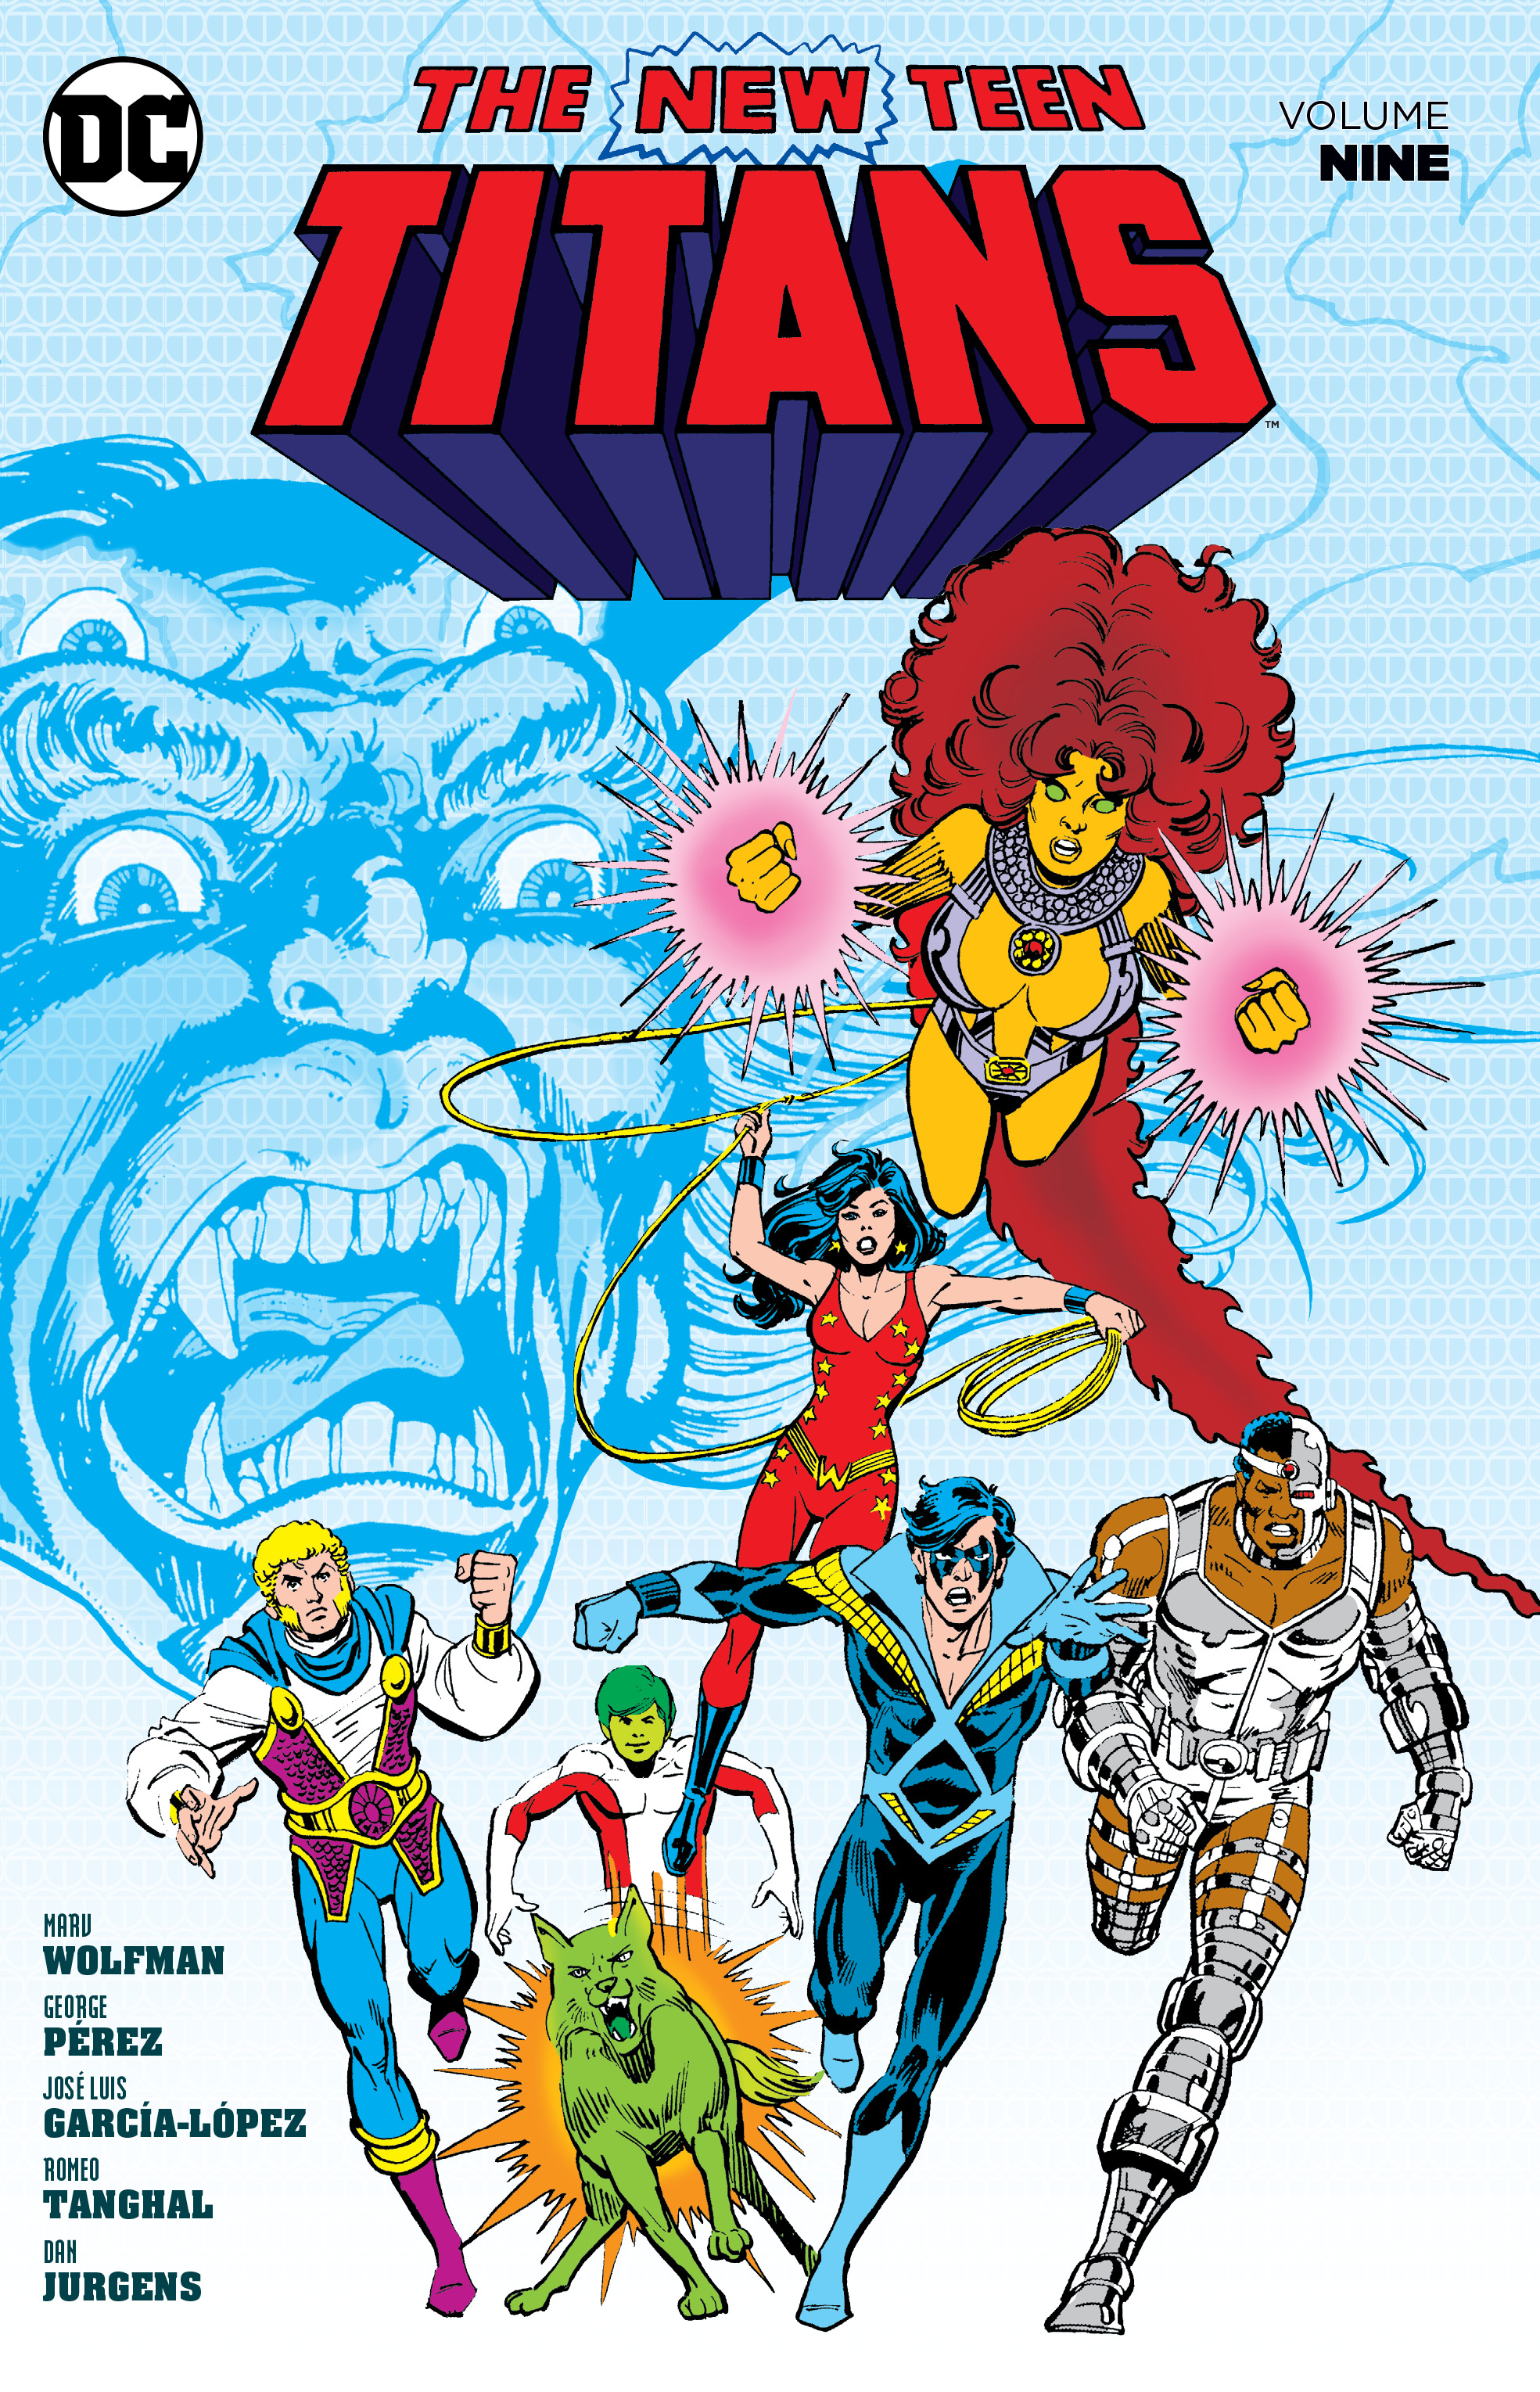 The New Teen Titans Vol. 9 (Collected)